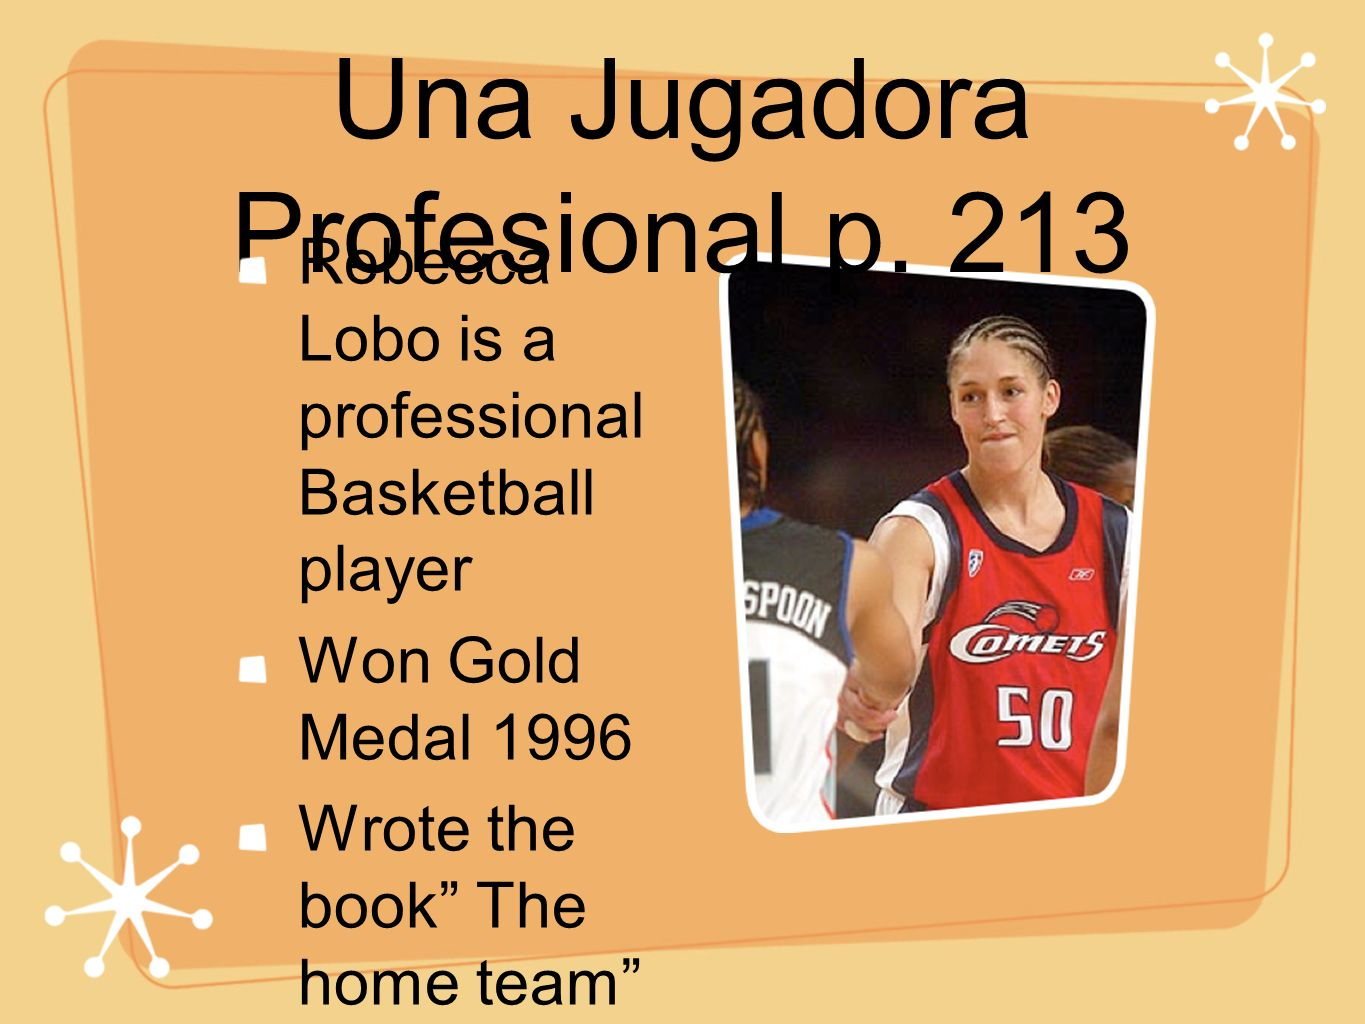 Una Jugadora Profesional p. 213 Rebecca Lobo is a professional Basketball player Won Gold Medal 1996 Wrote the book The home team